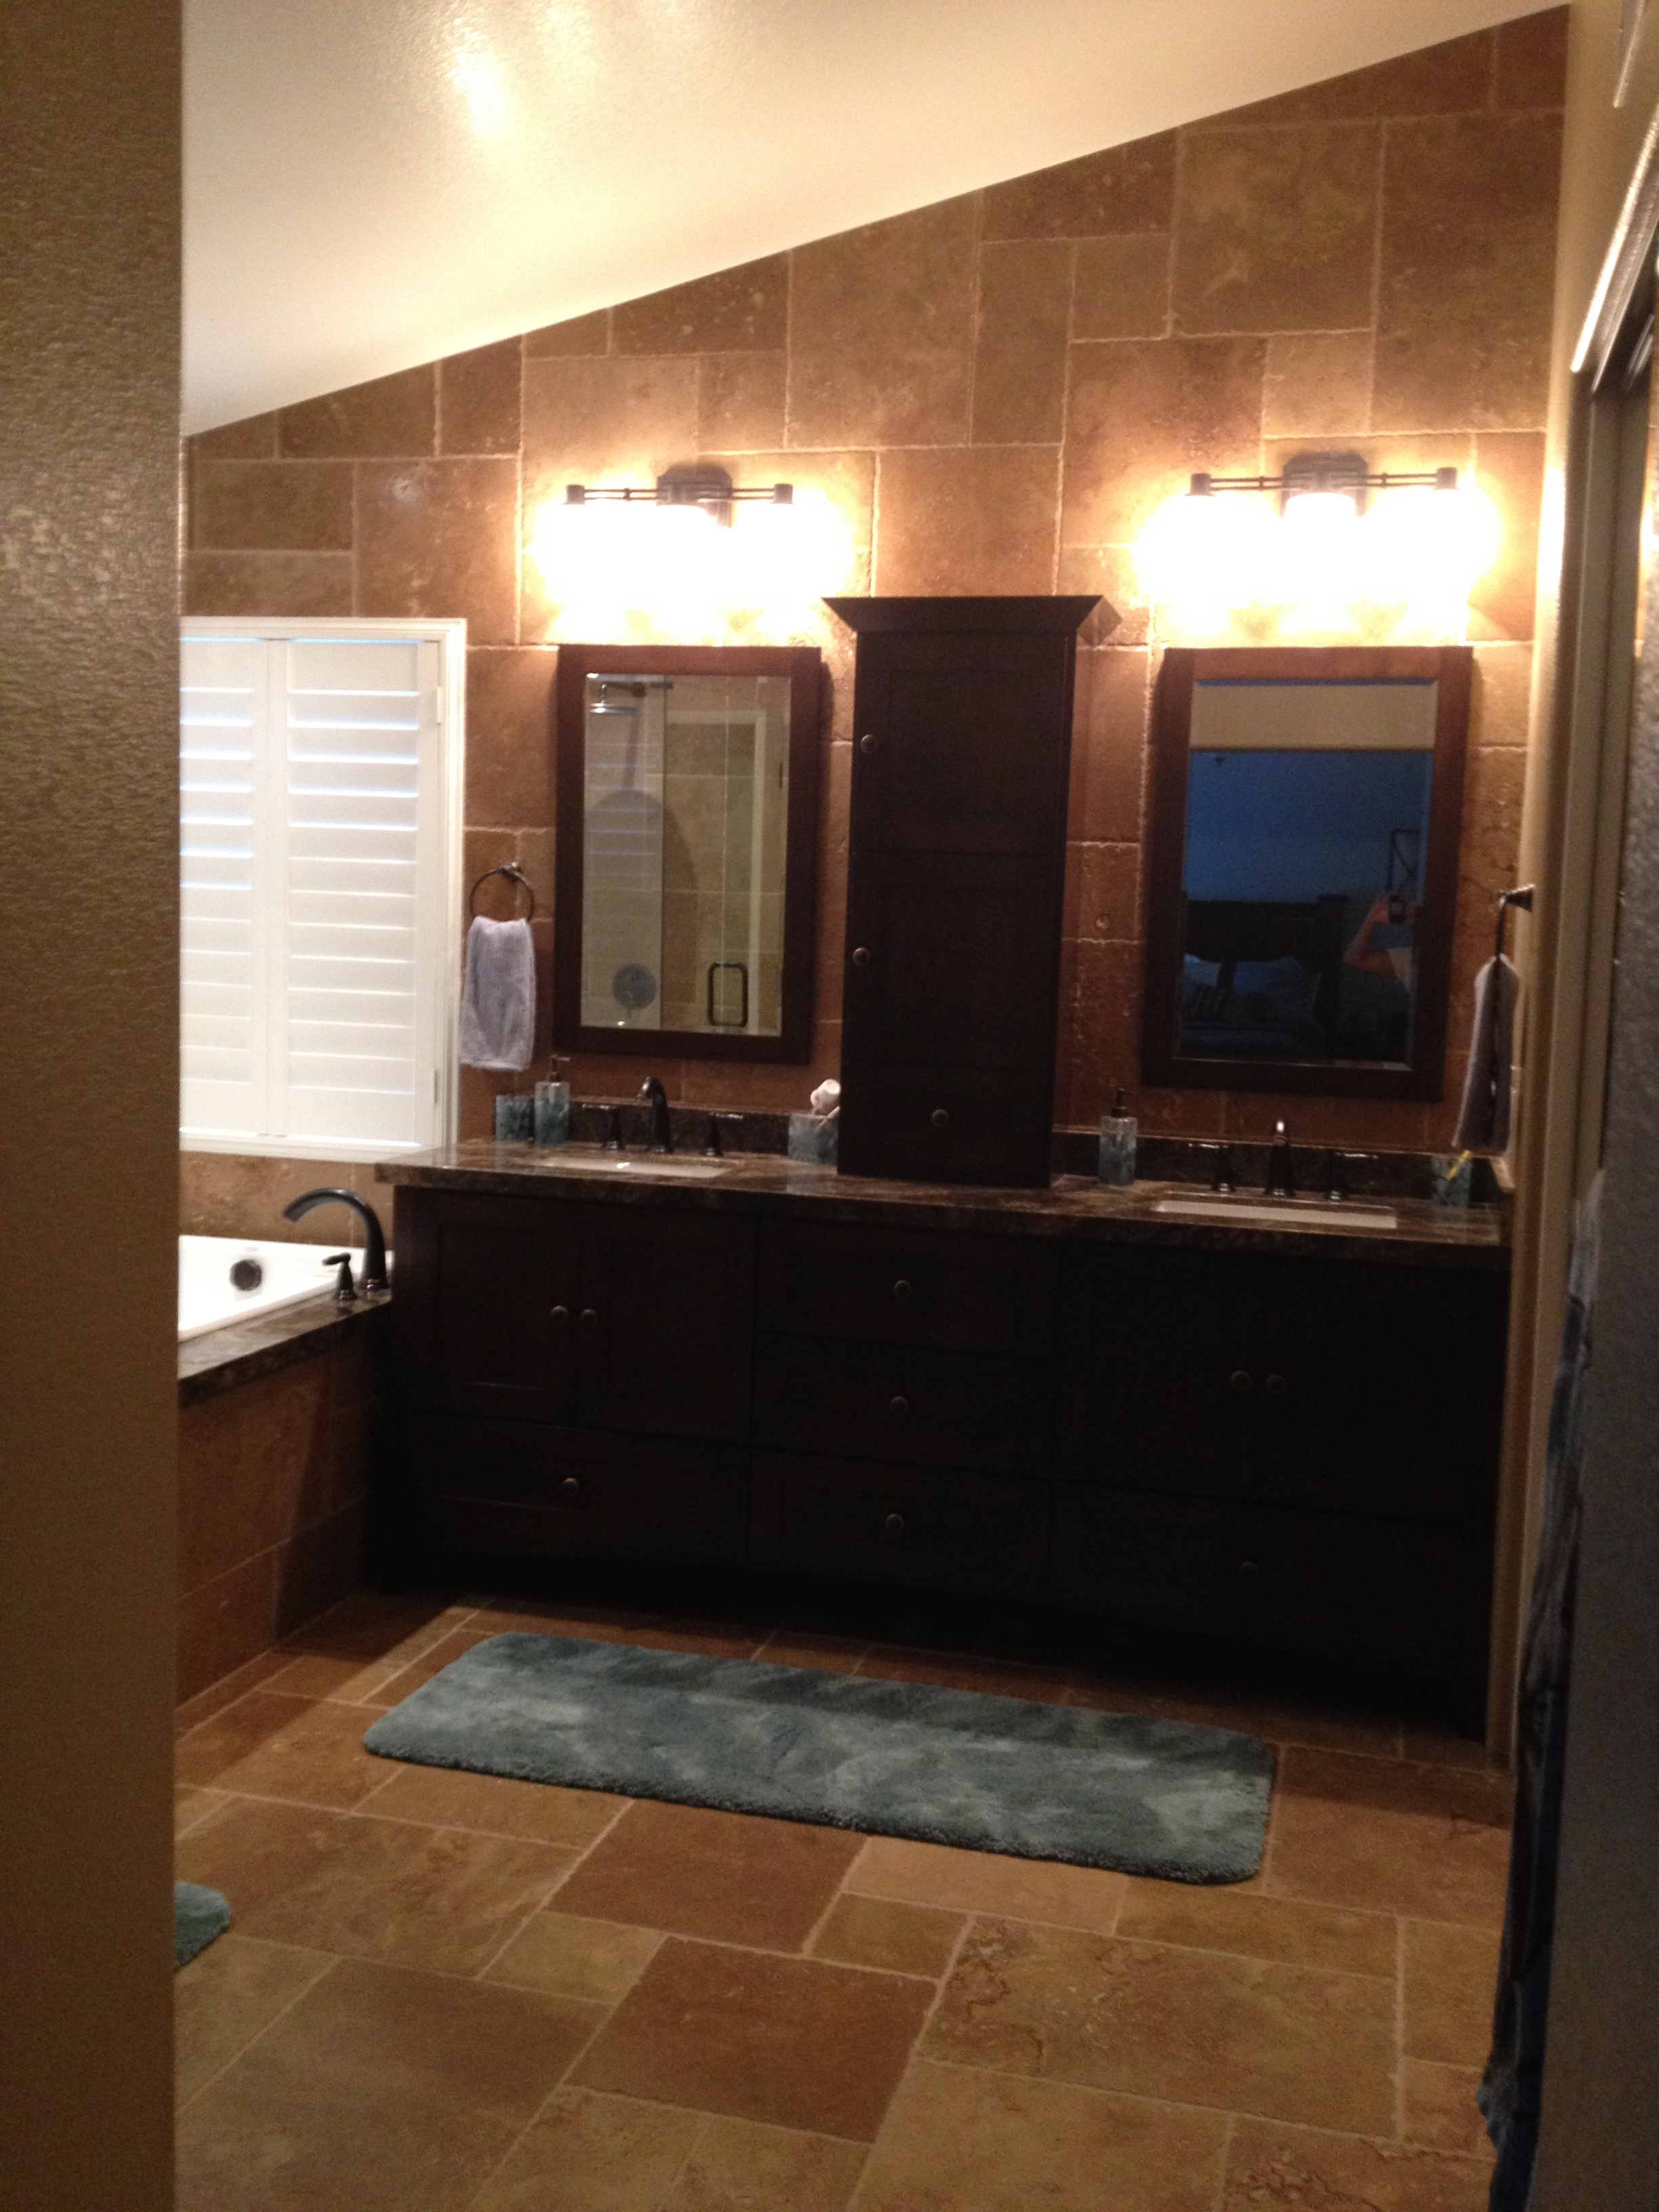 Pictures Of Our Bathroom Remodel And Some Lessons Learned - Southern maryland bathroom remodeling